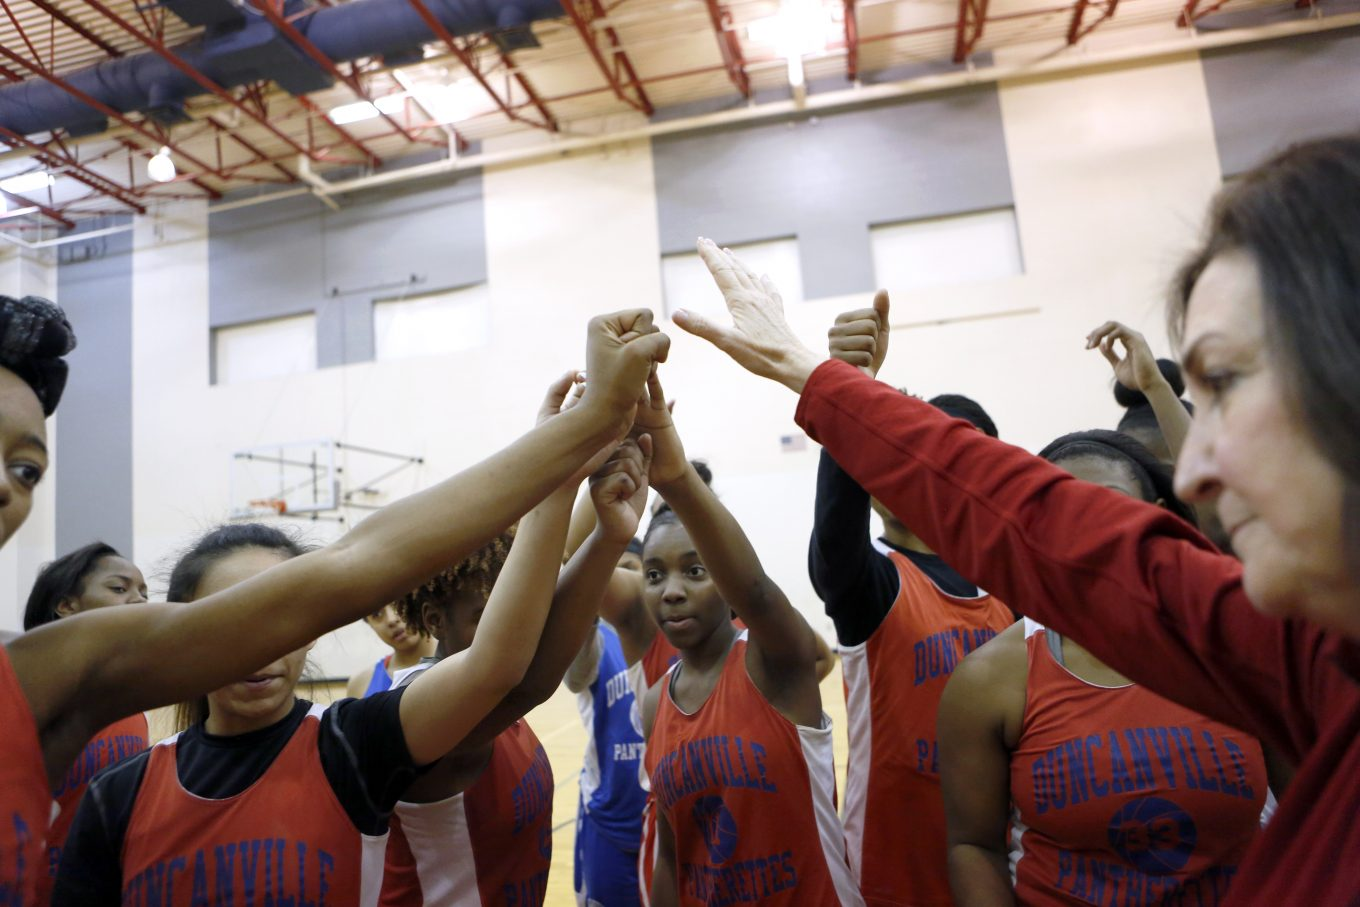 Head coach Cathy Self-Morgan gives her team high-fives after practice at Duncanville High School. Photo/Lara Solt